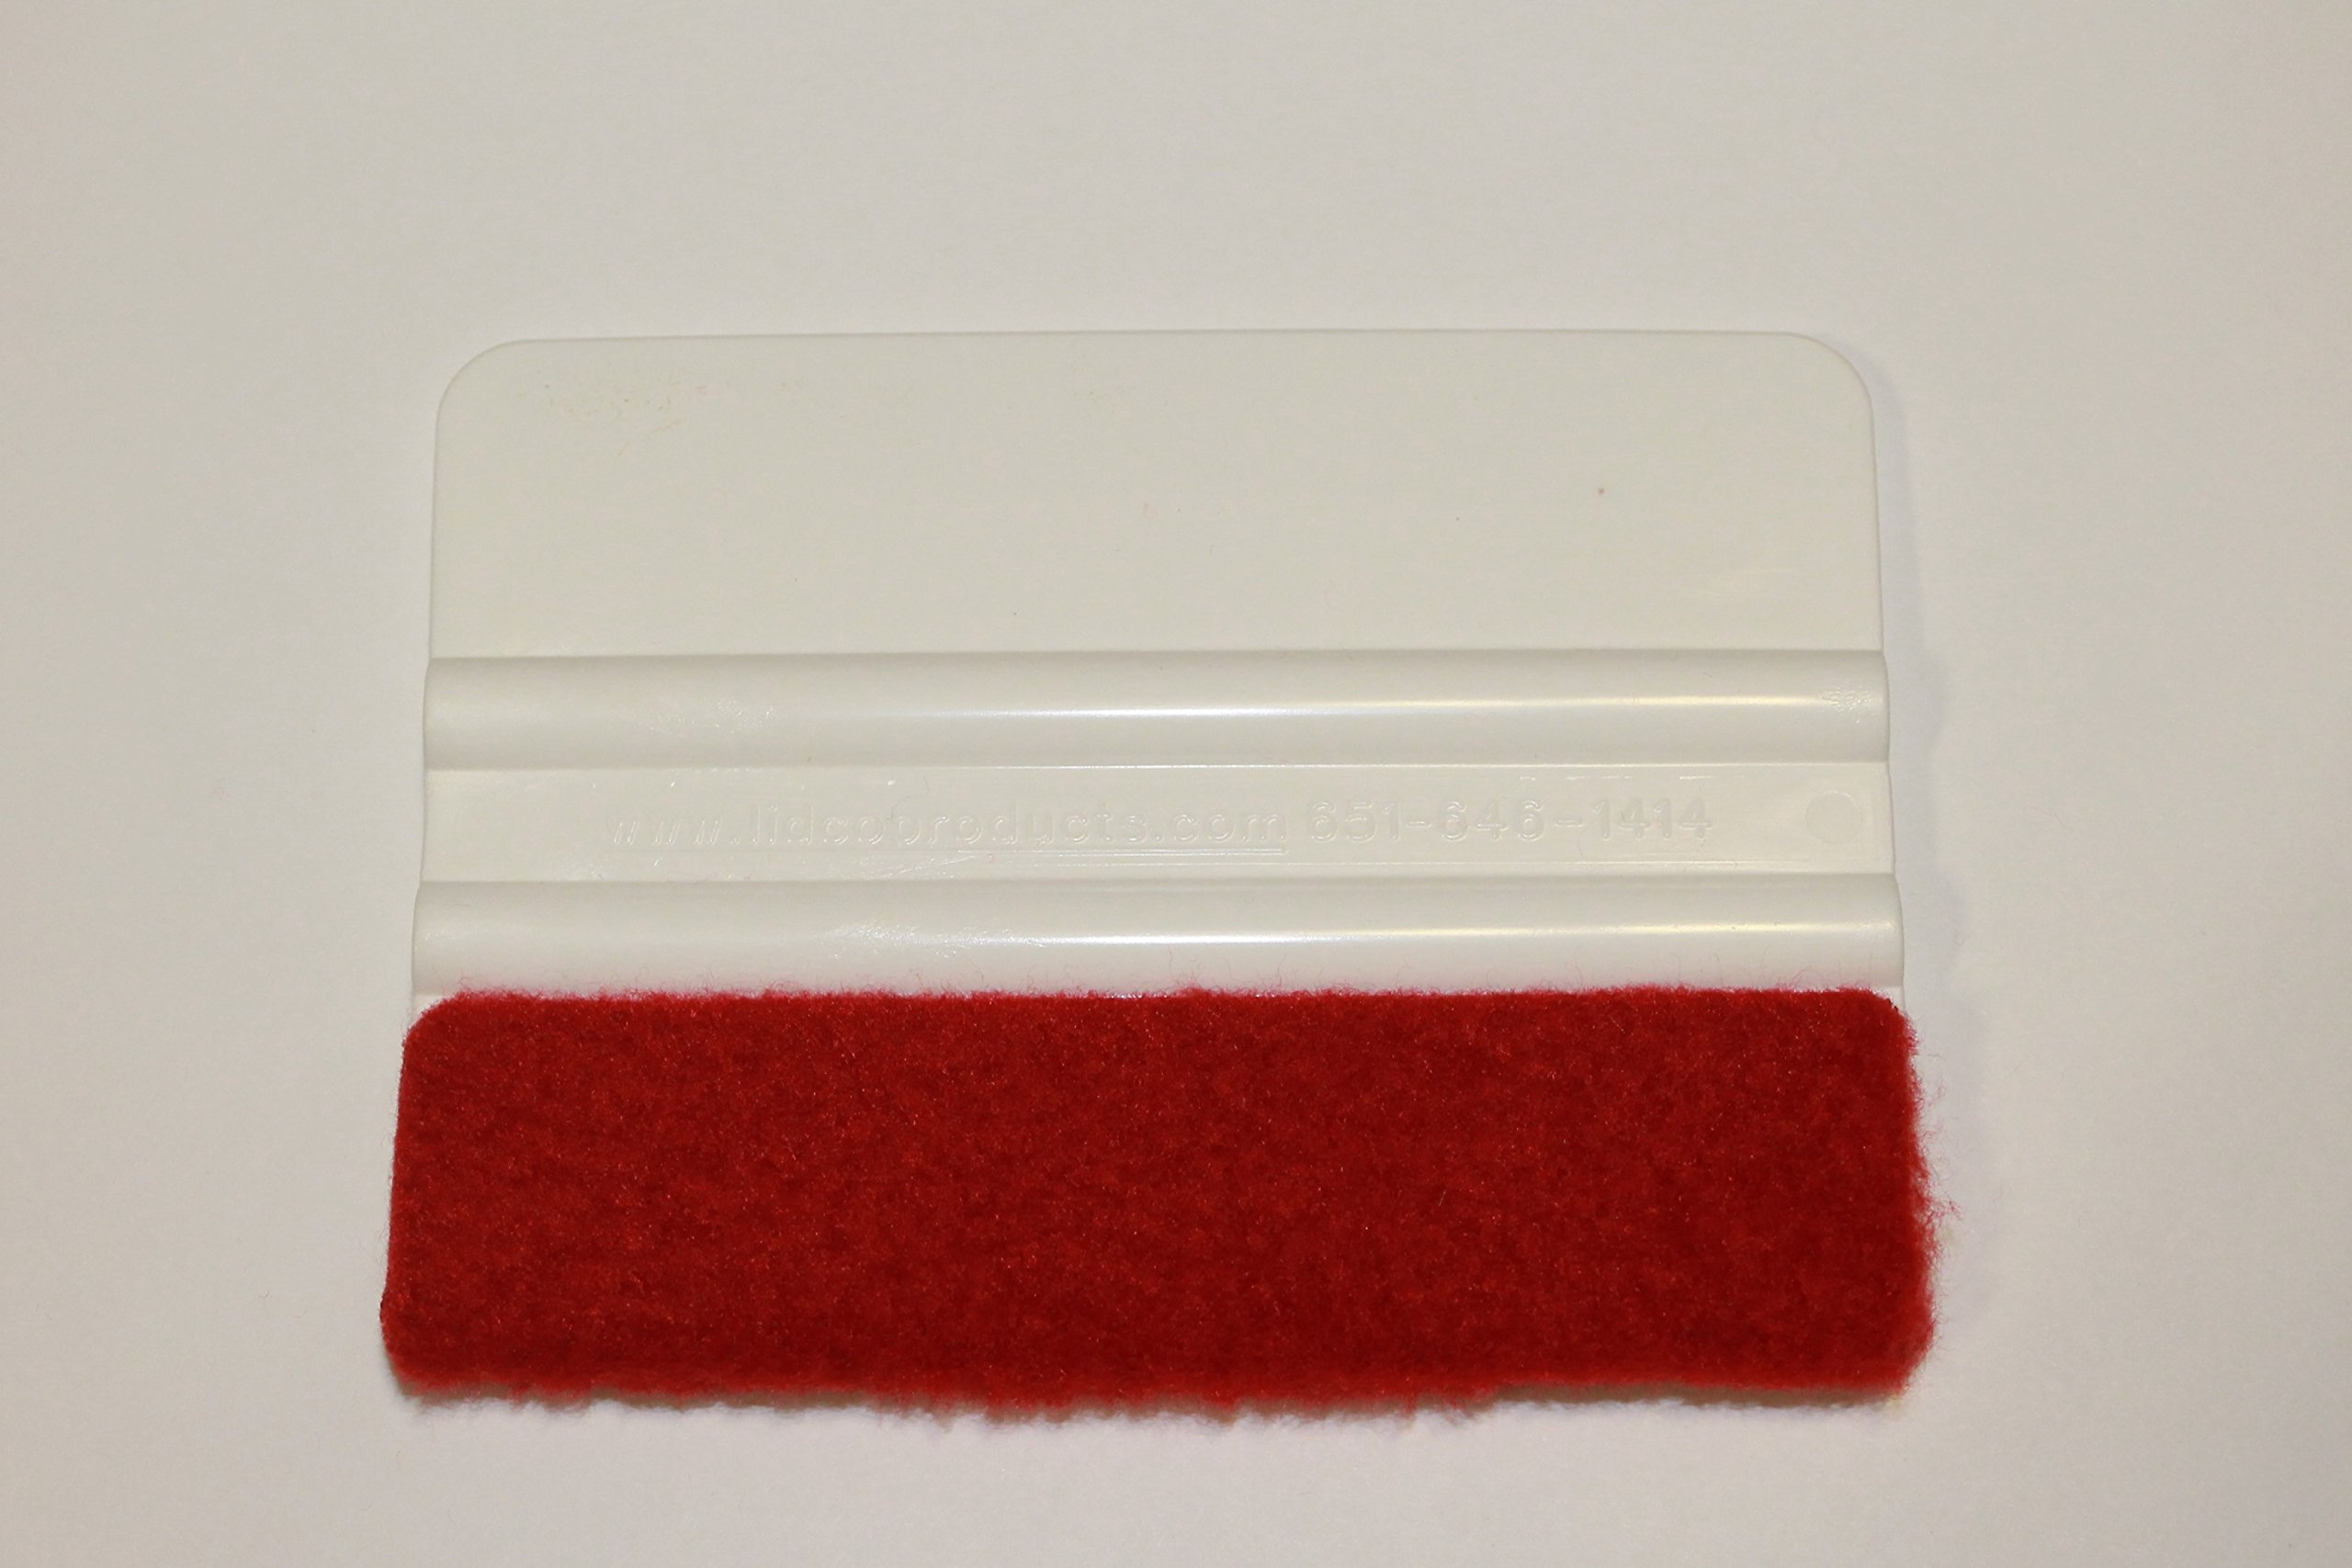 INDUSTRY STANDARD 4-INCH SQUEEGEE/ROLLEPRO WRAPIDGLIDE MICRO-FLEECE SQUEEGEE COVERS by Rollepro (Image #4)